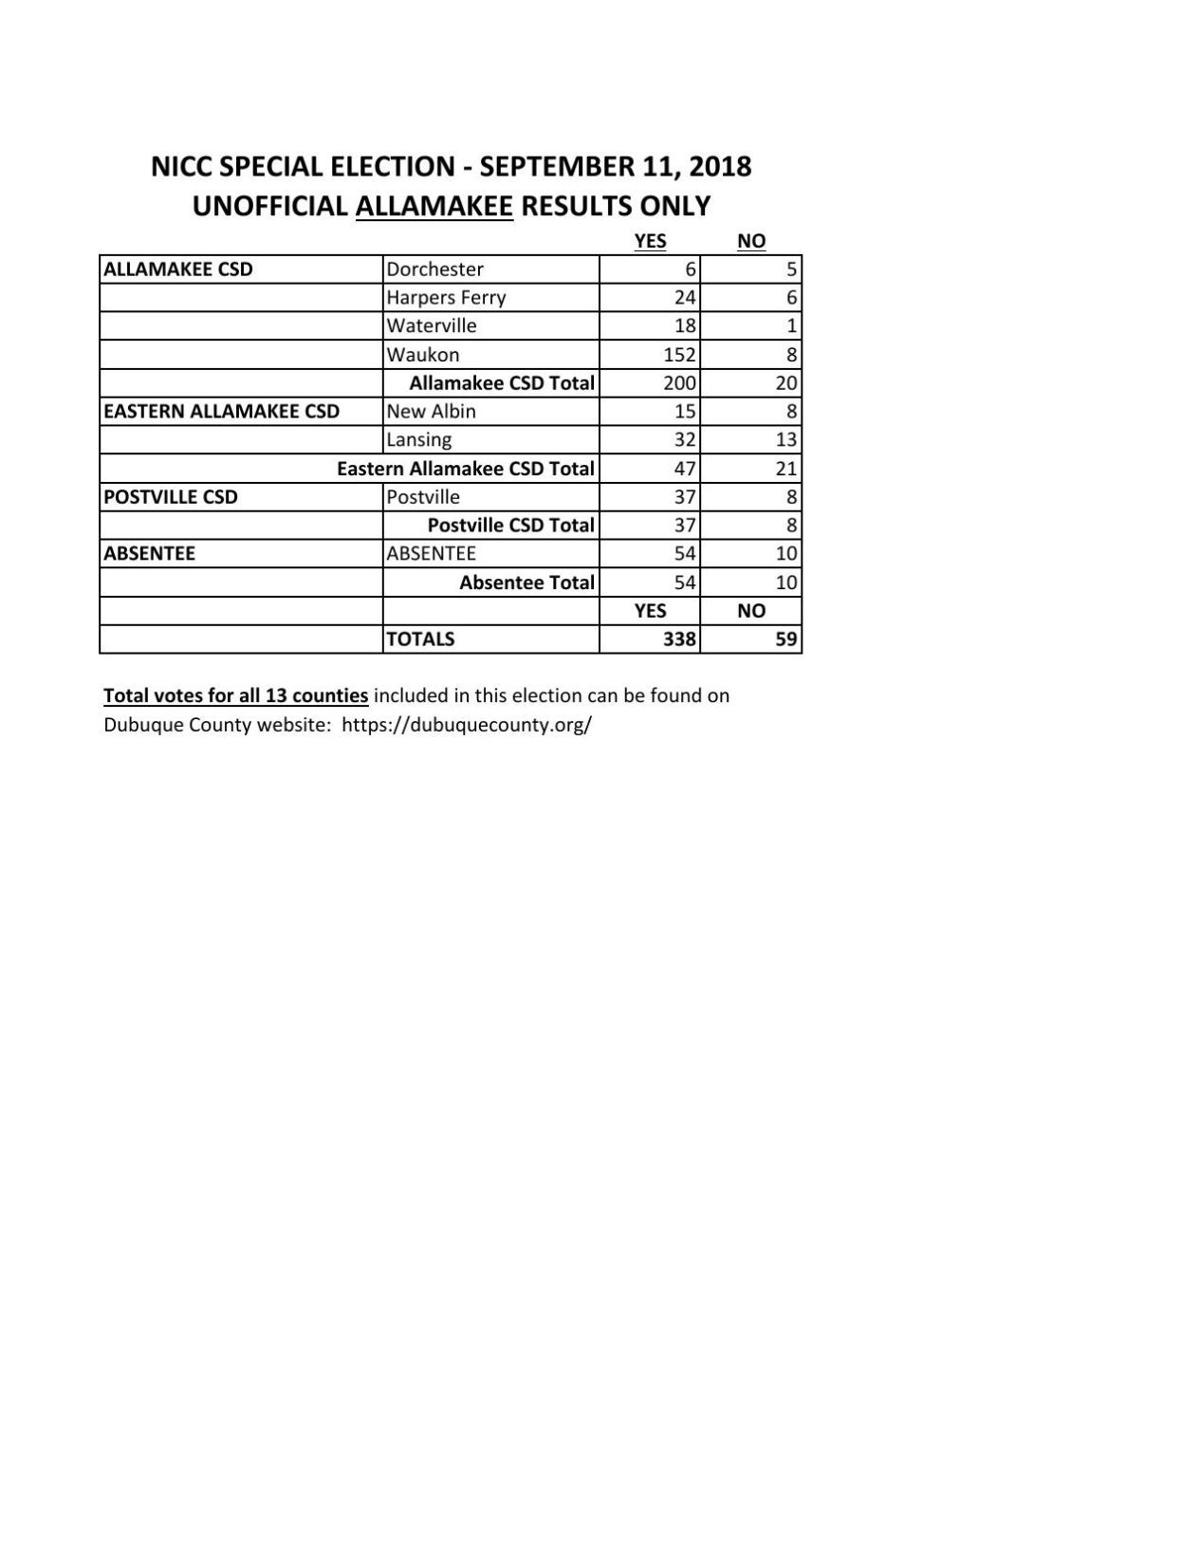 PDF: NICC results, Allamakee County, Sept. 11, 2018